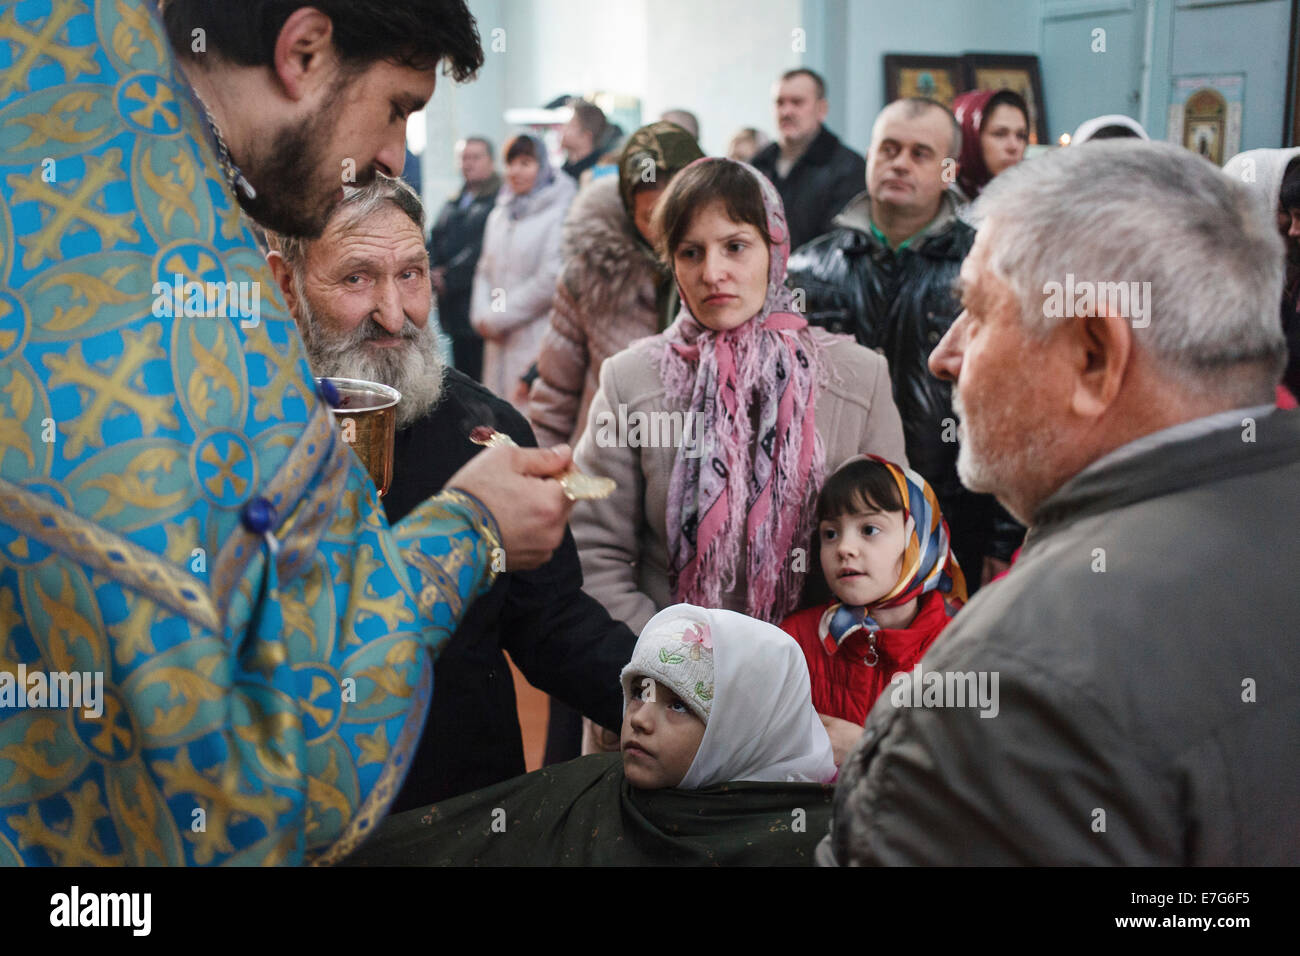 Blessing of the sick at the Feast of Epiphany in the church of the Orthodox Old Believers, Vilkovo, Ukraine - Stock Image